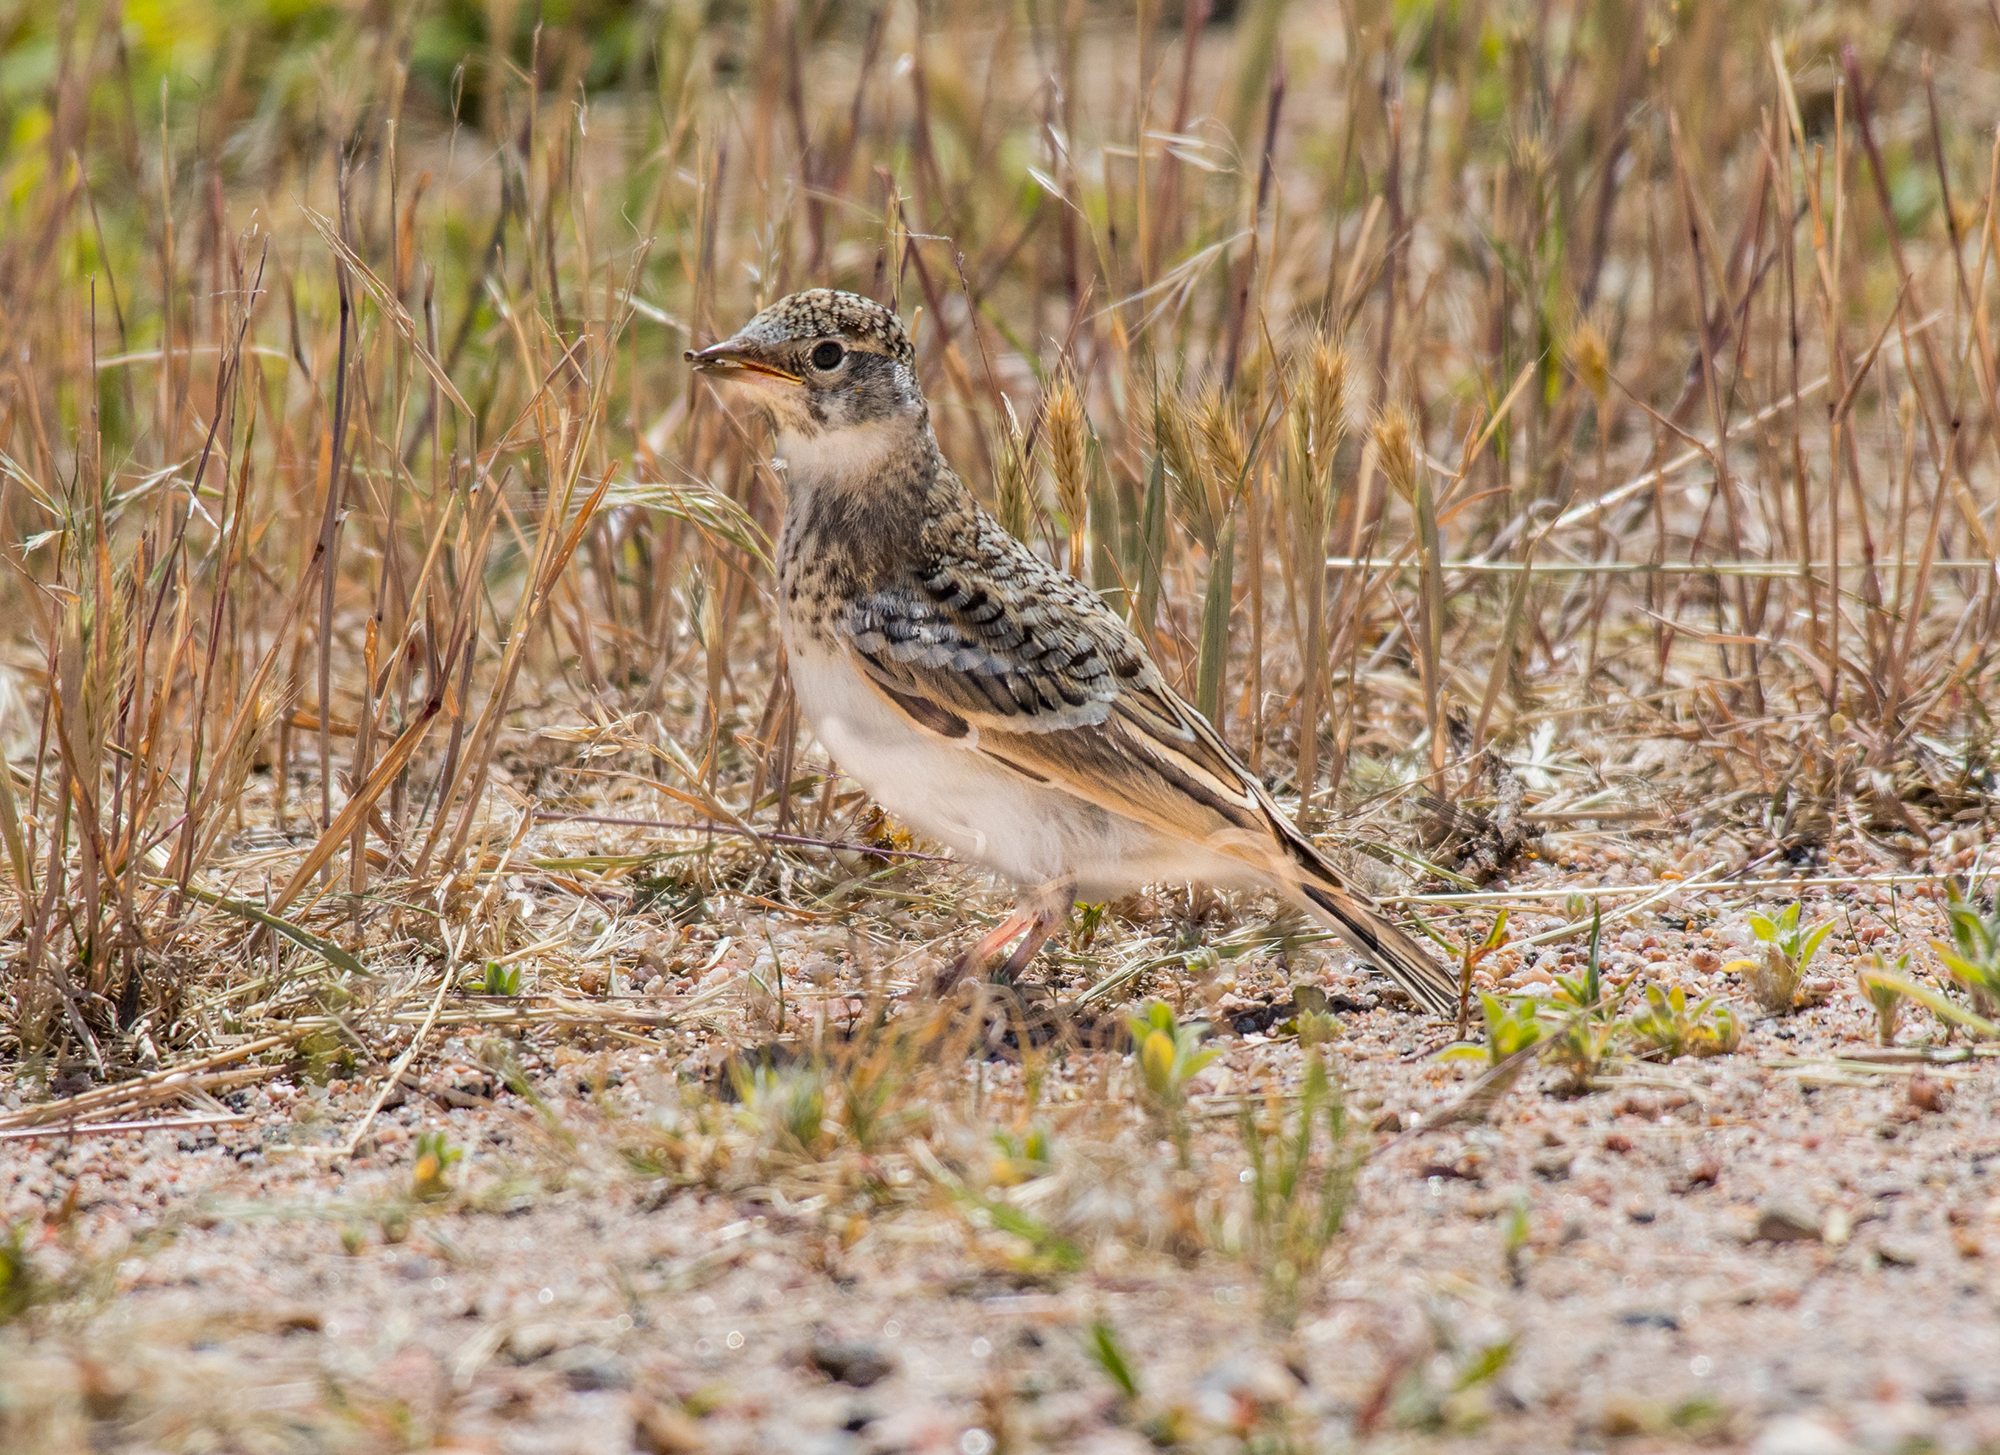 Sprague's pipit photo by Shutterstock